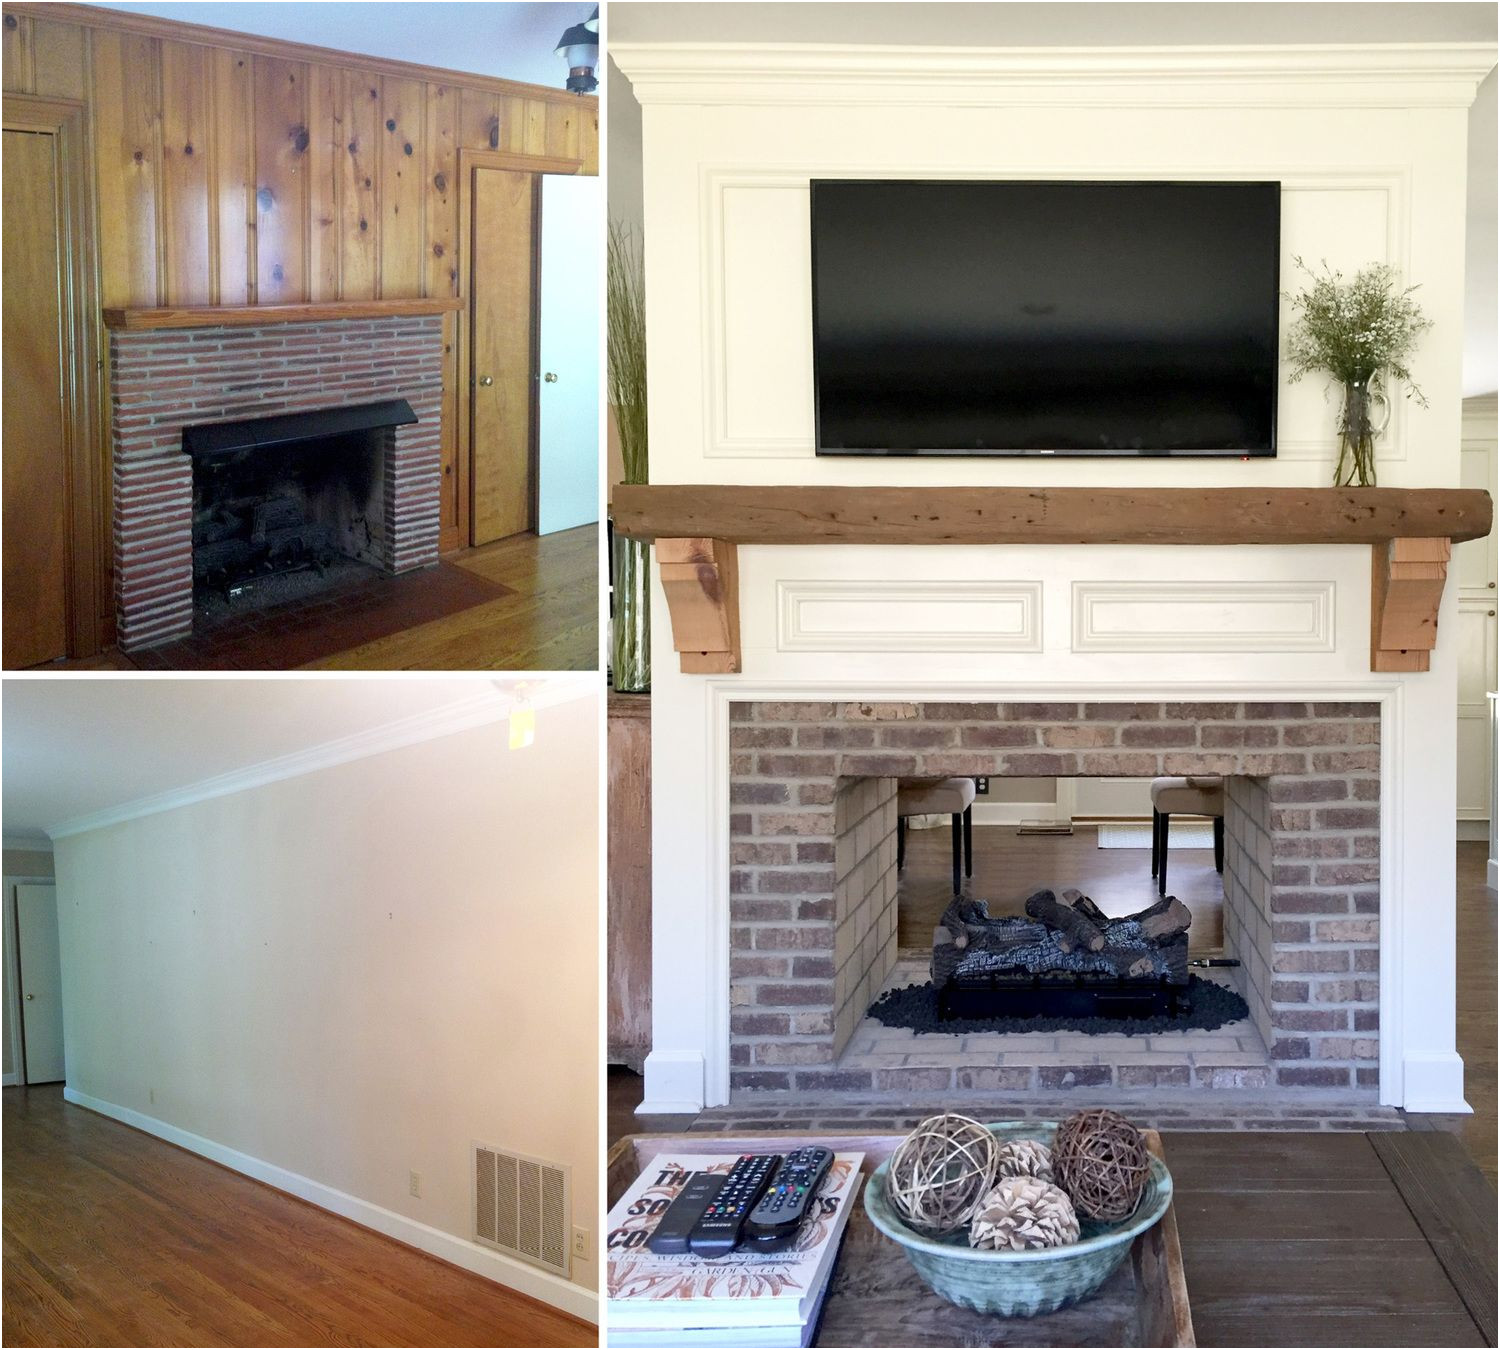 Remodeling Fireplace before and after Elegant Fireplace Renovation Converting A Single Sided Fireplace to